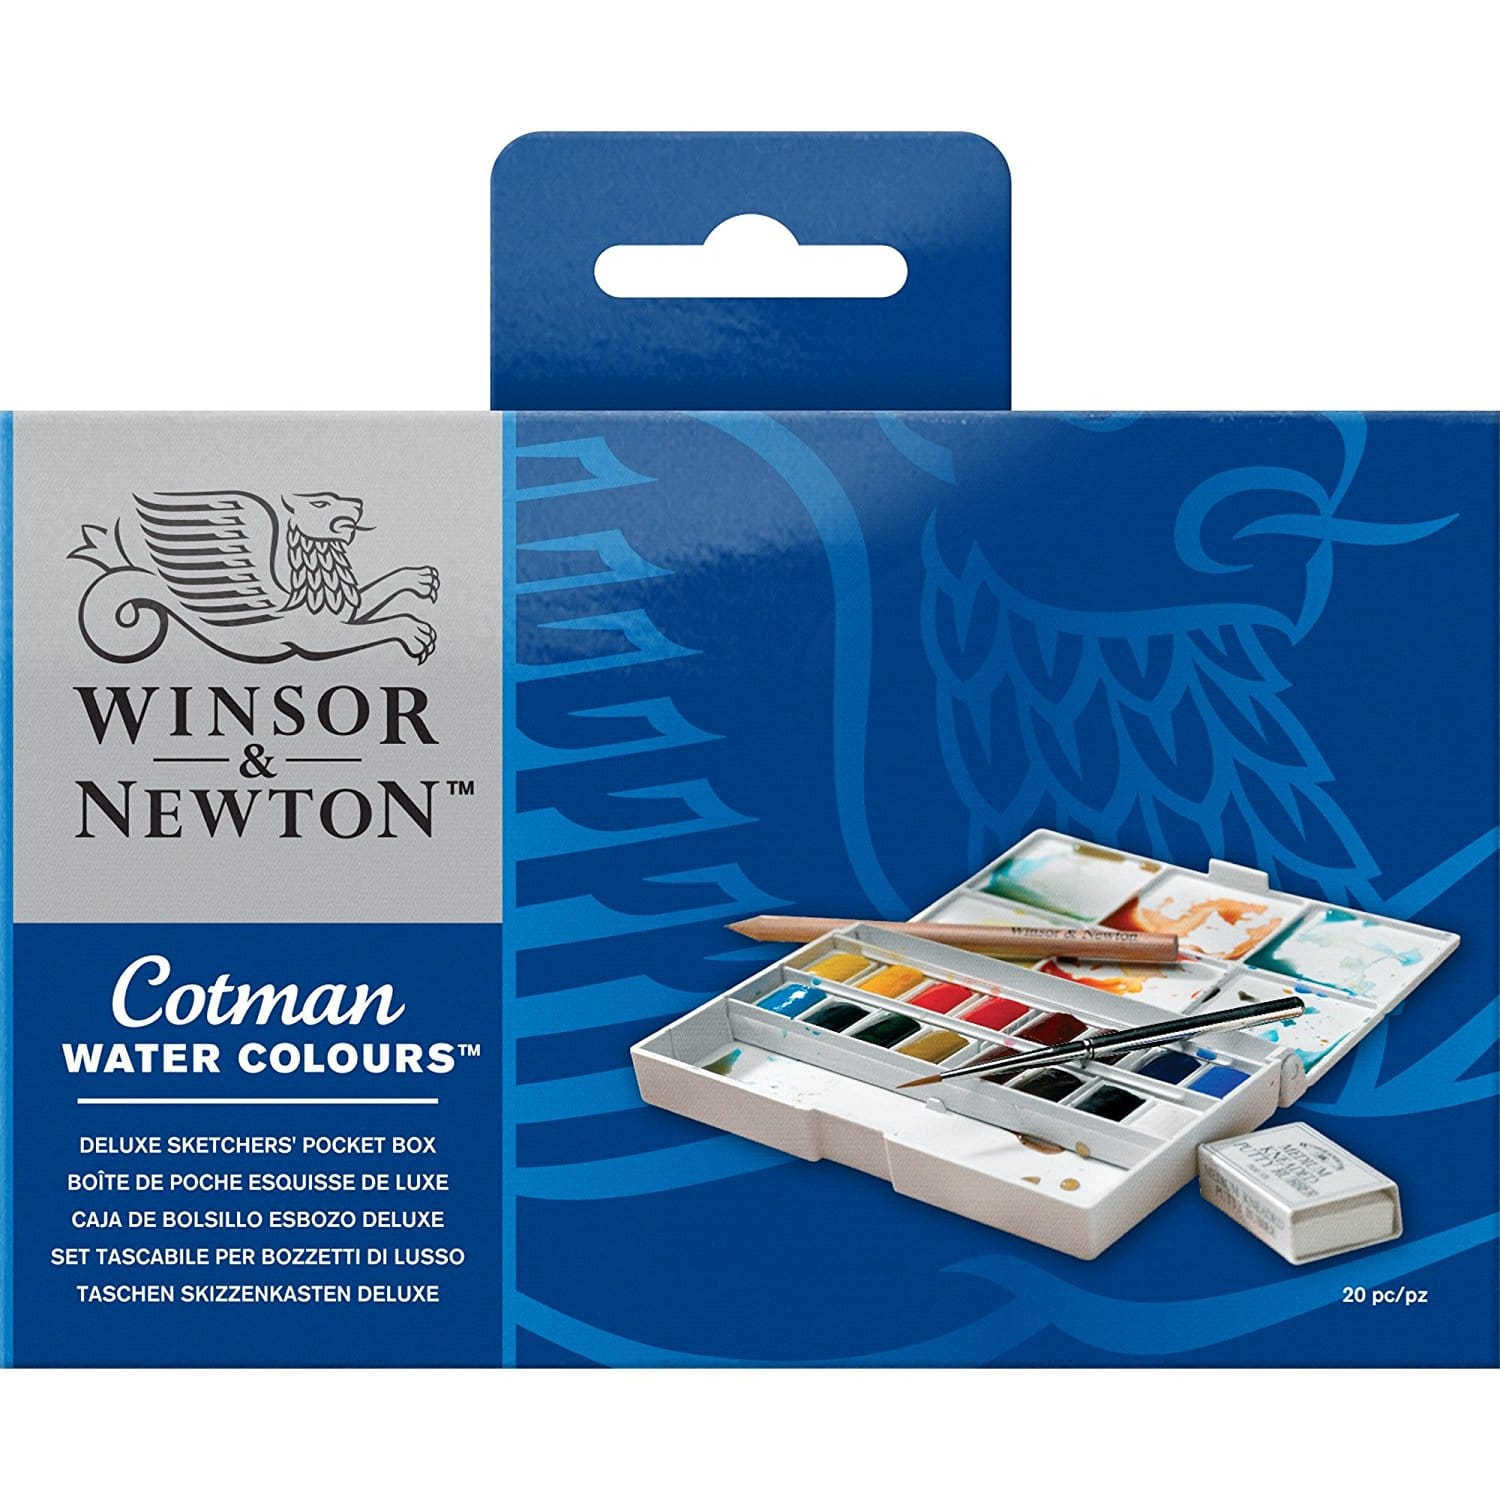 Winsor & Newton Cotman Watercolor Deluxe Set - Watercolor Art Supplies For Beginners